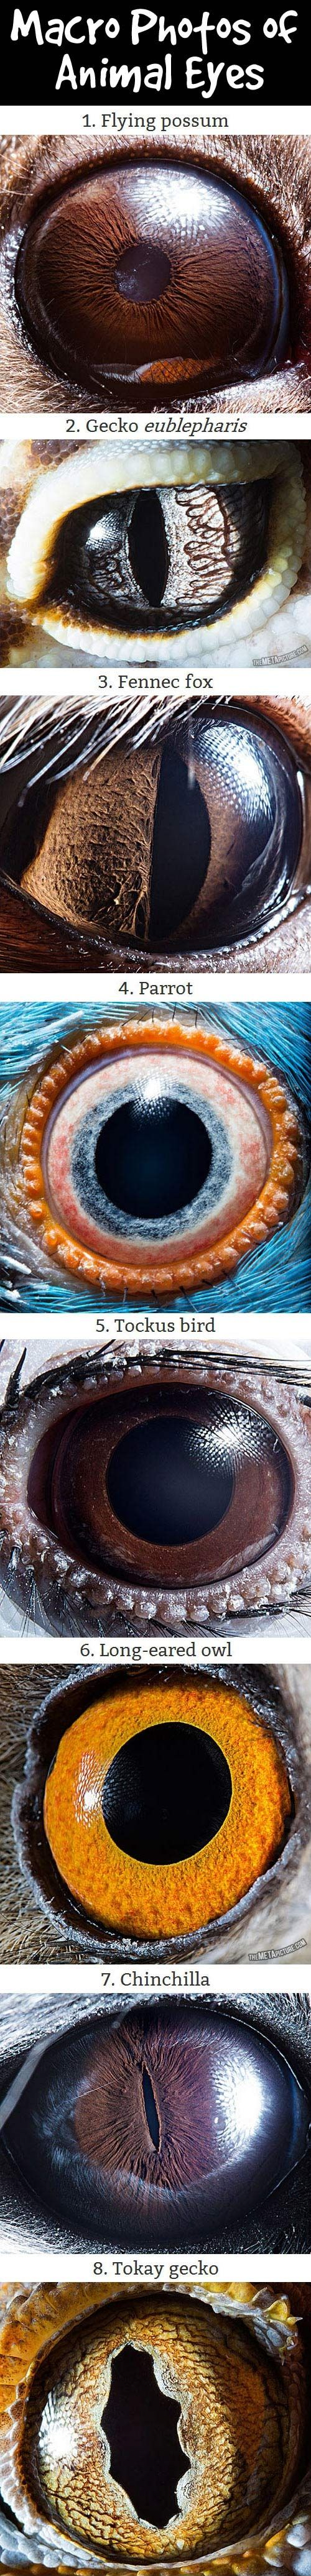 Macro photos of animal eyes.